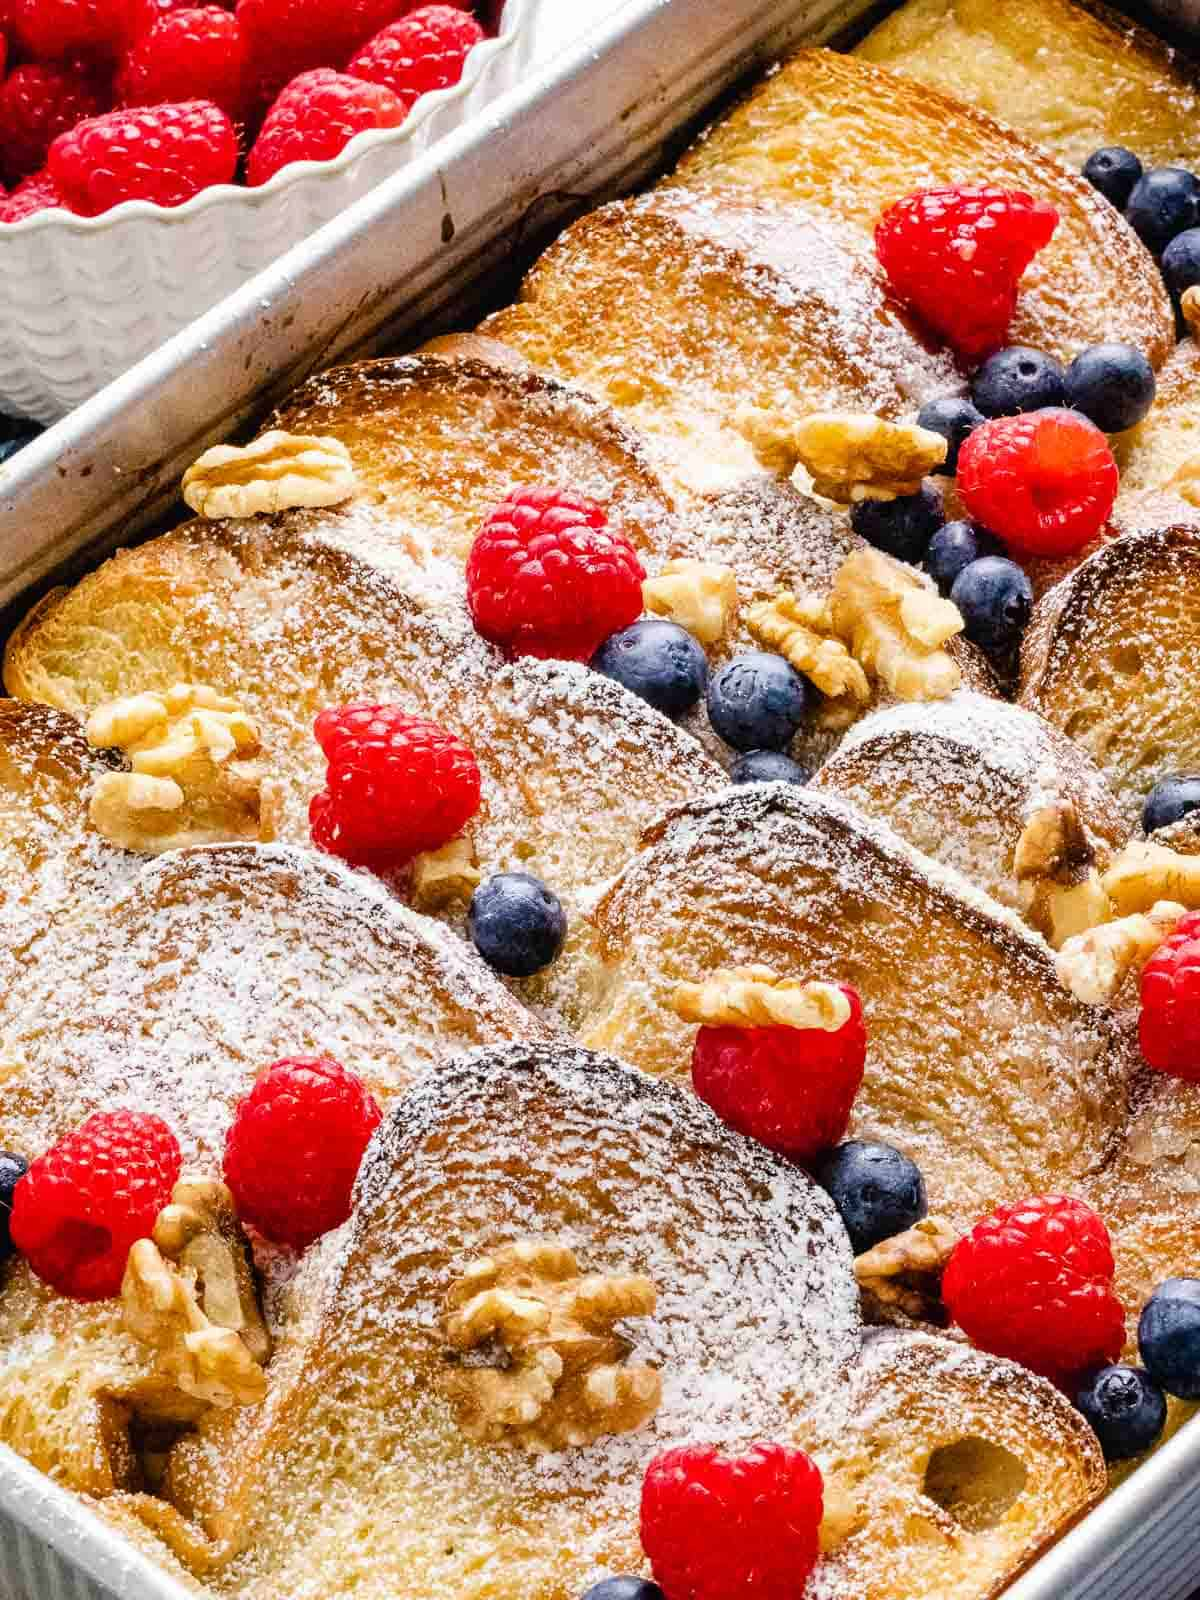 Overhead of french toast casserole in a baking pan topped with blueberries, raspberries, and walnuts dusted with powdered sugar.